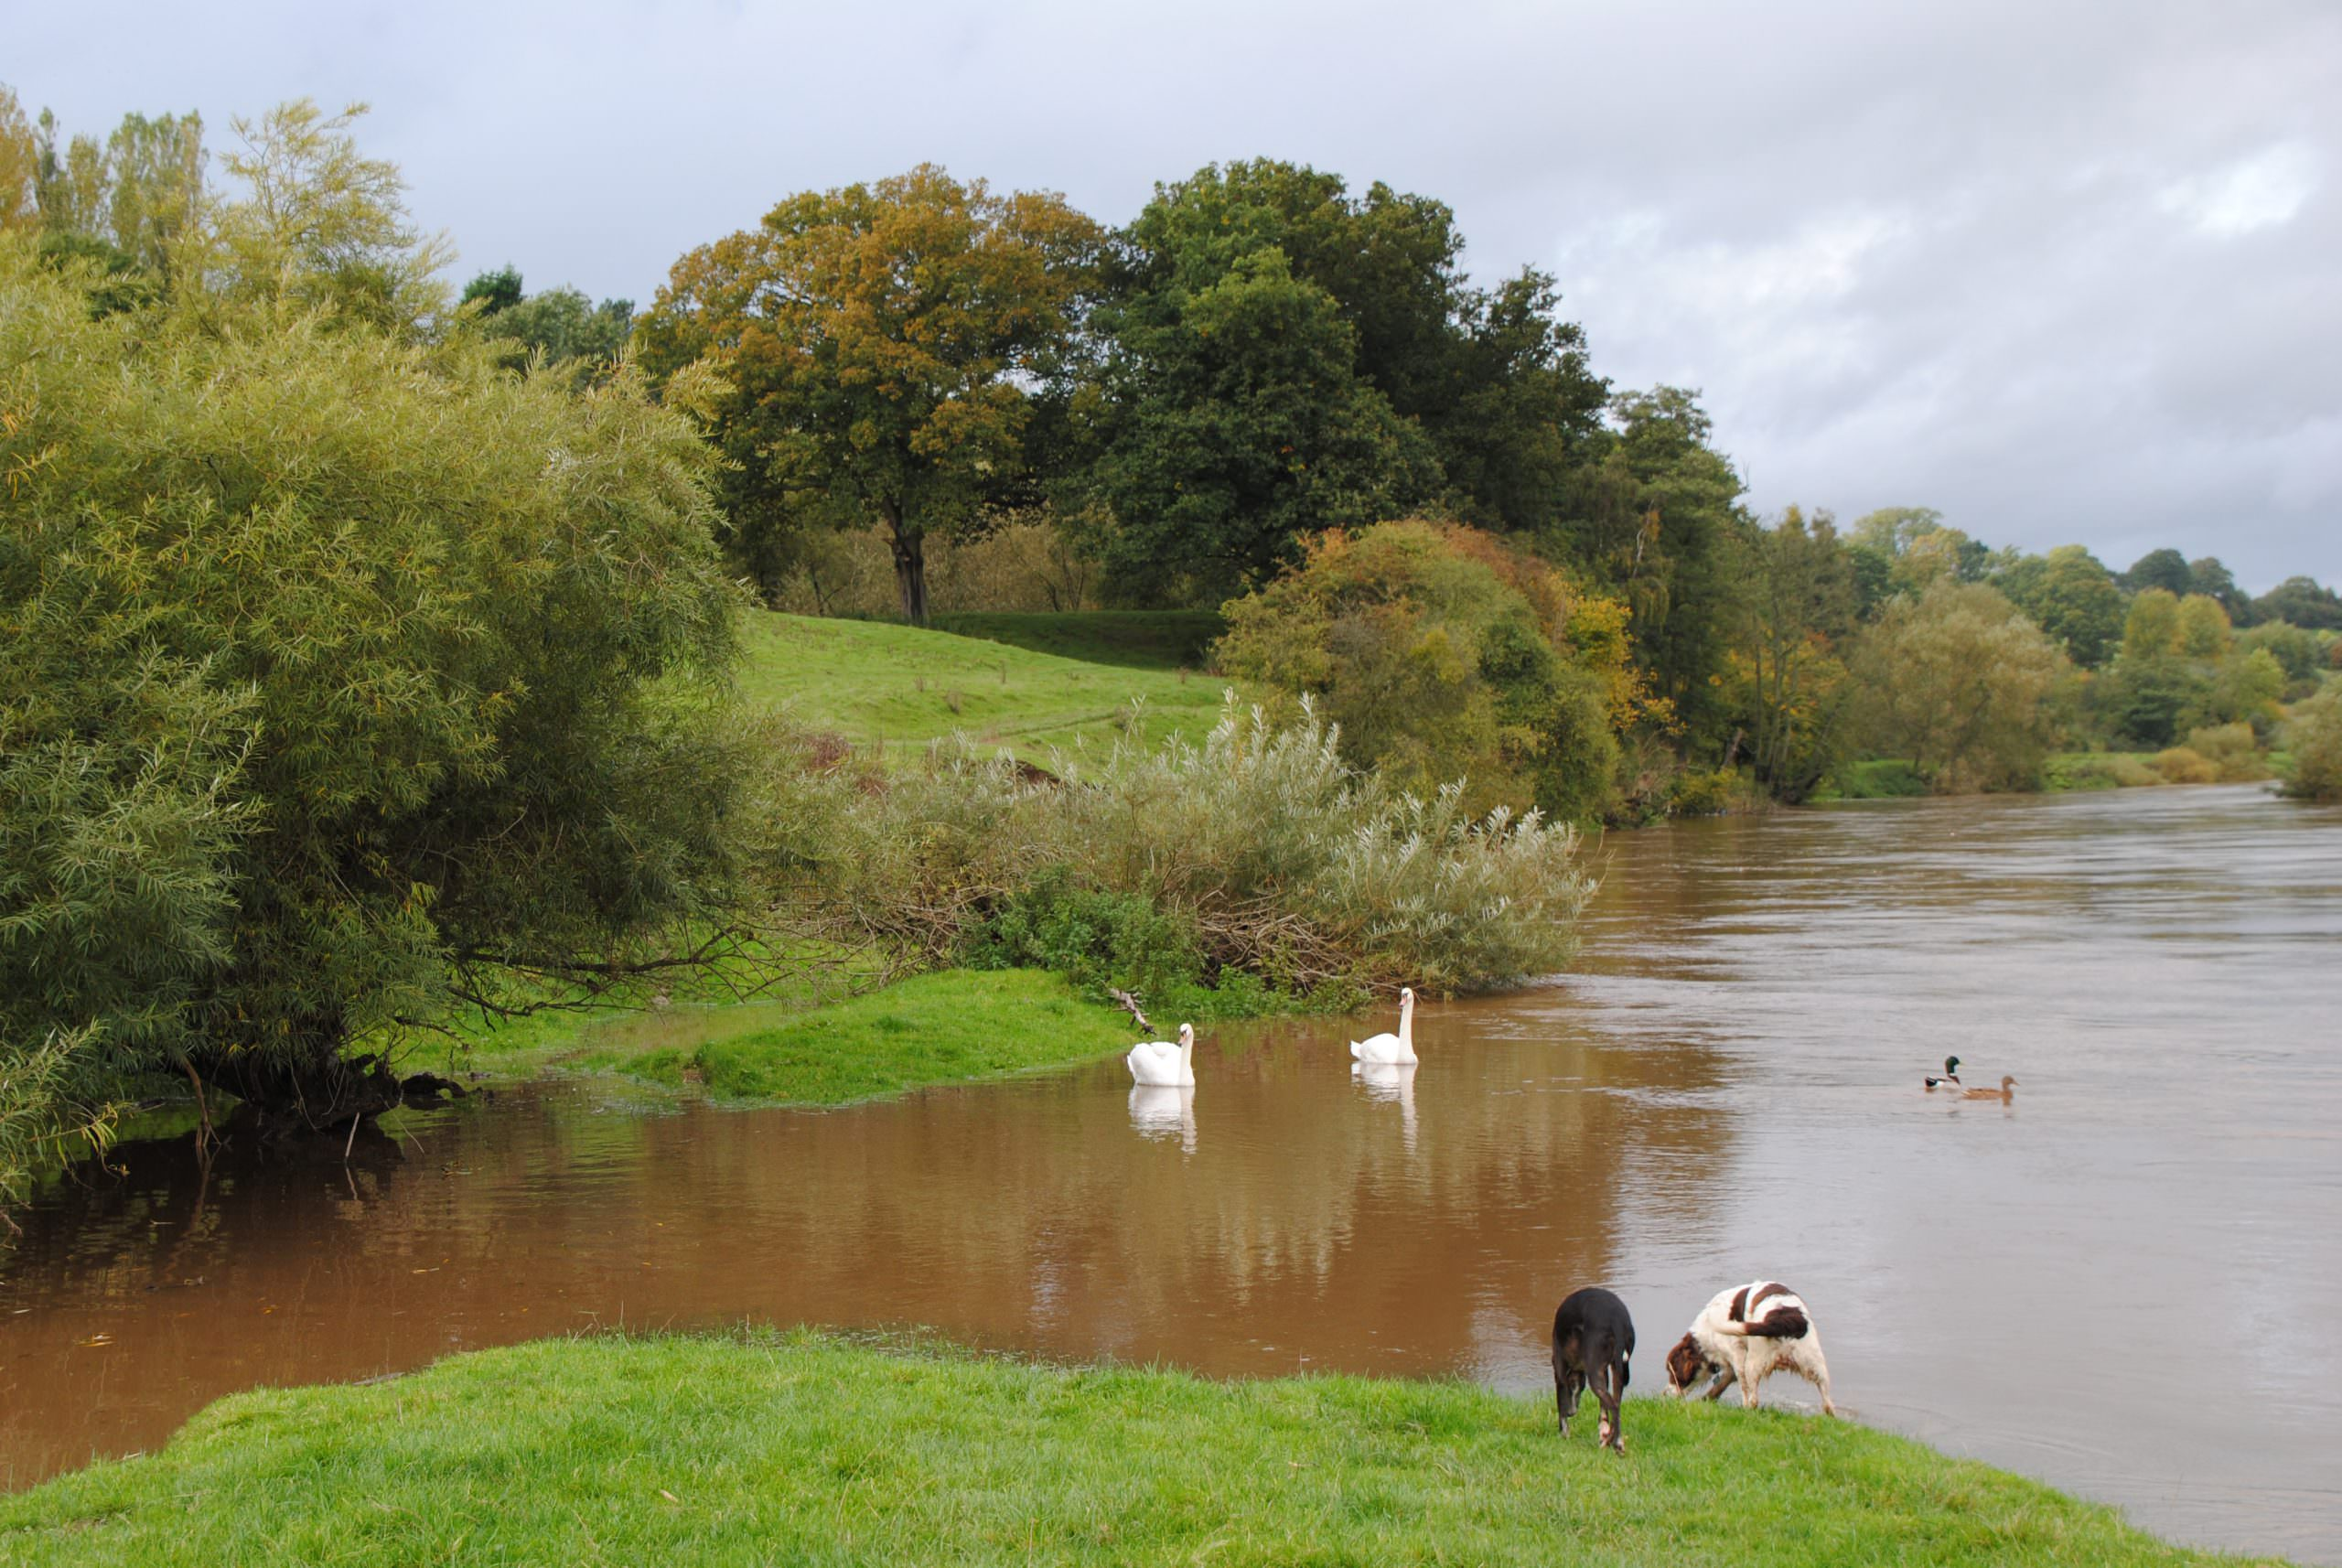 A view down the river Severn, 2 ducks and 2 swans are swimming, 2 dogs are on the near side bank. The rivers flowing fast, there are lots of trees on the far bank and the weather is good.